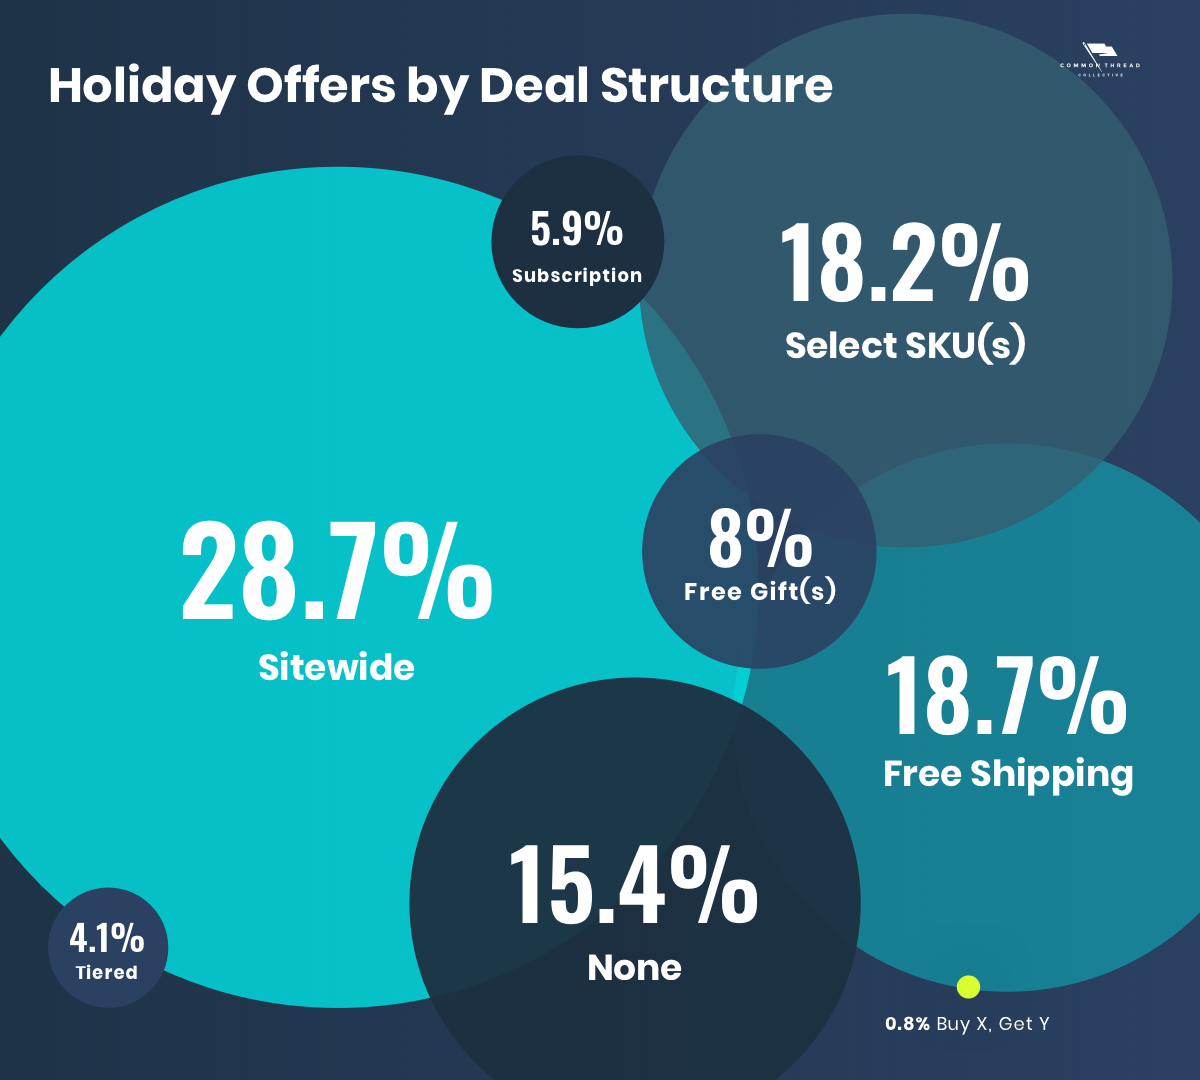 Ecommerce holiday offers by deal structure